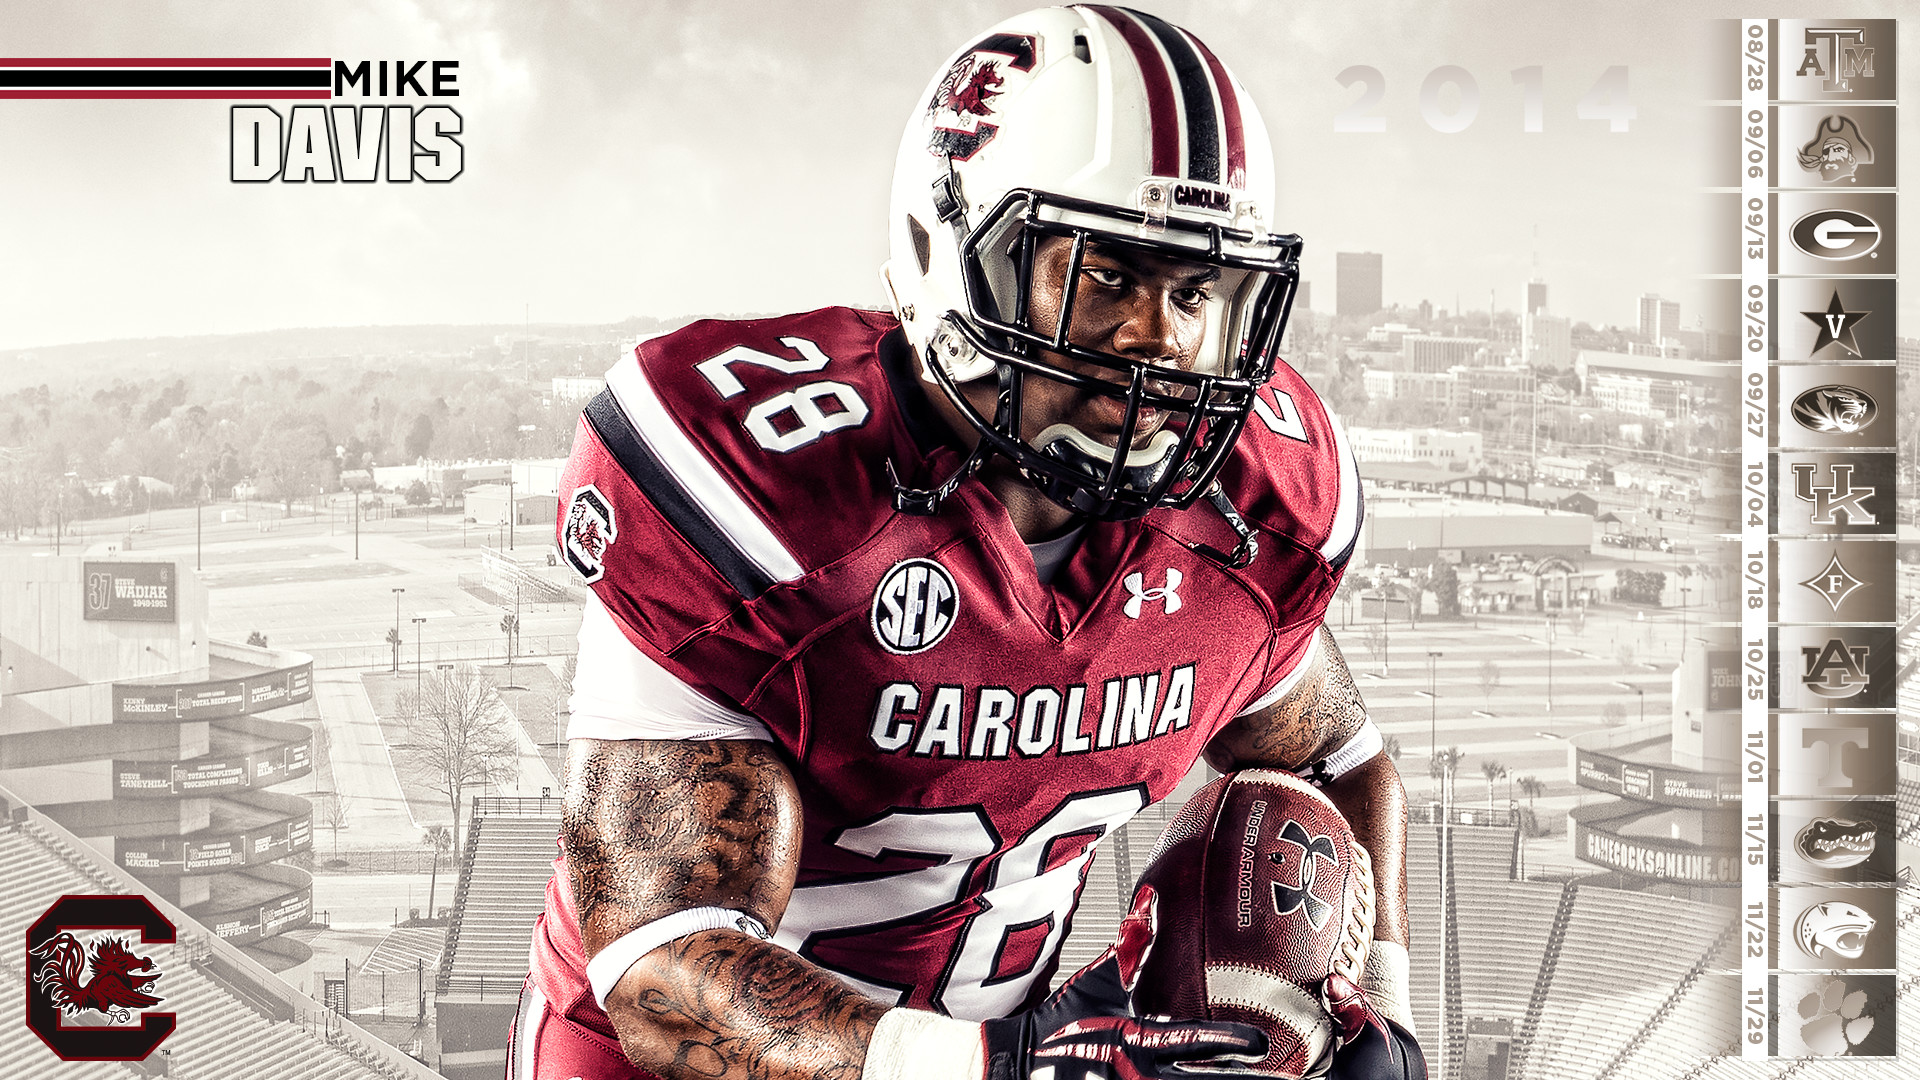 Res: 1920x1080, University of South Carolina Official Athletic Site